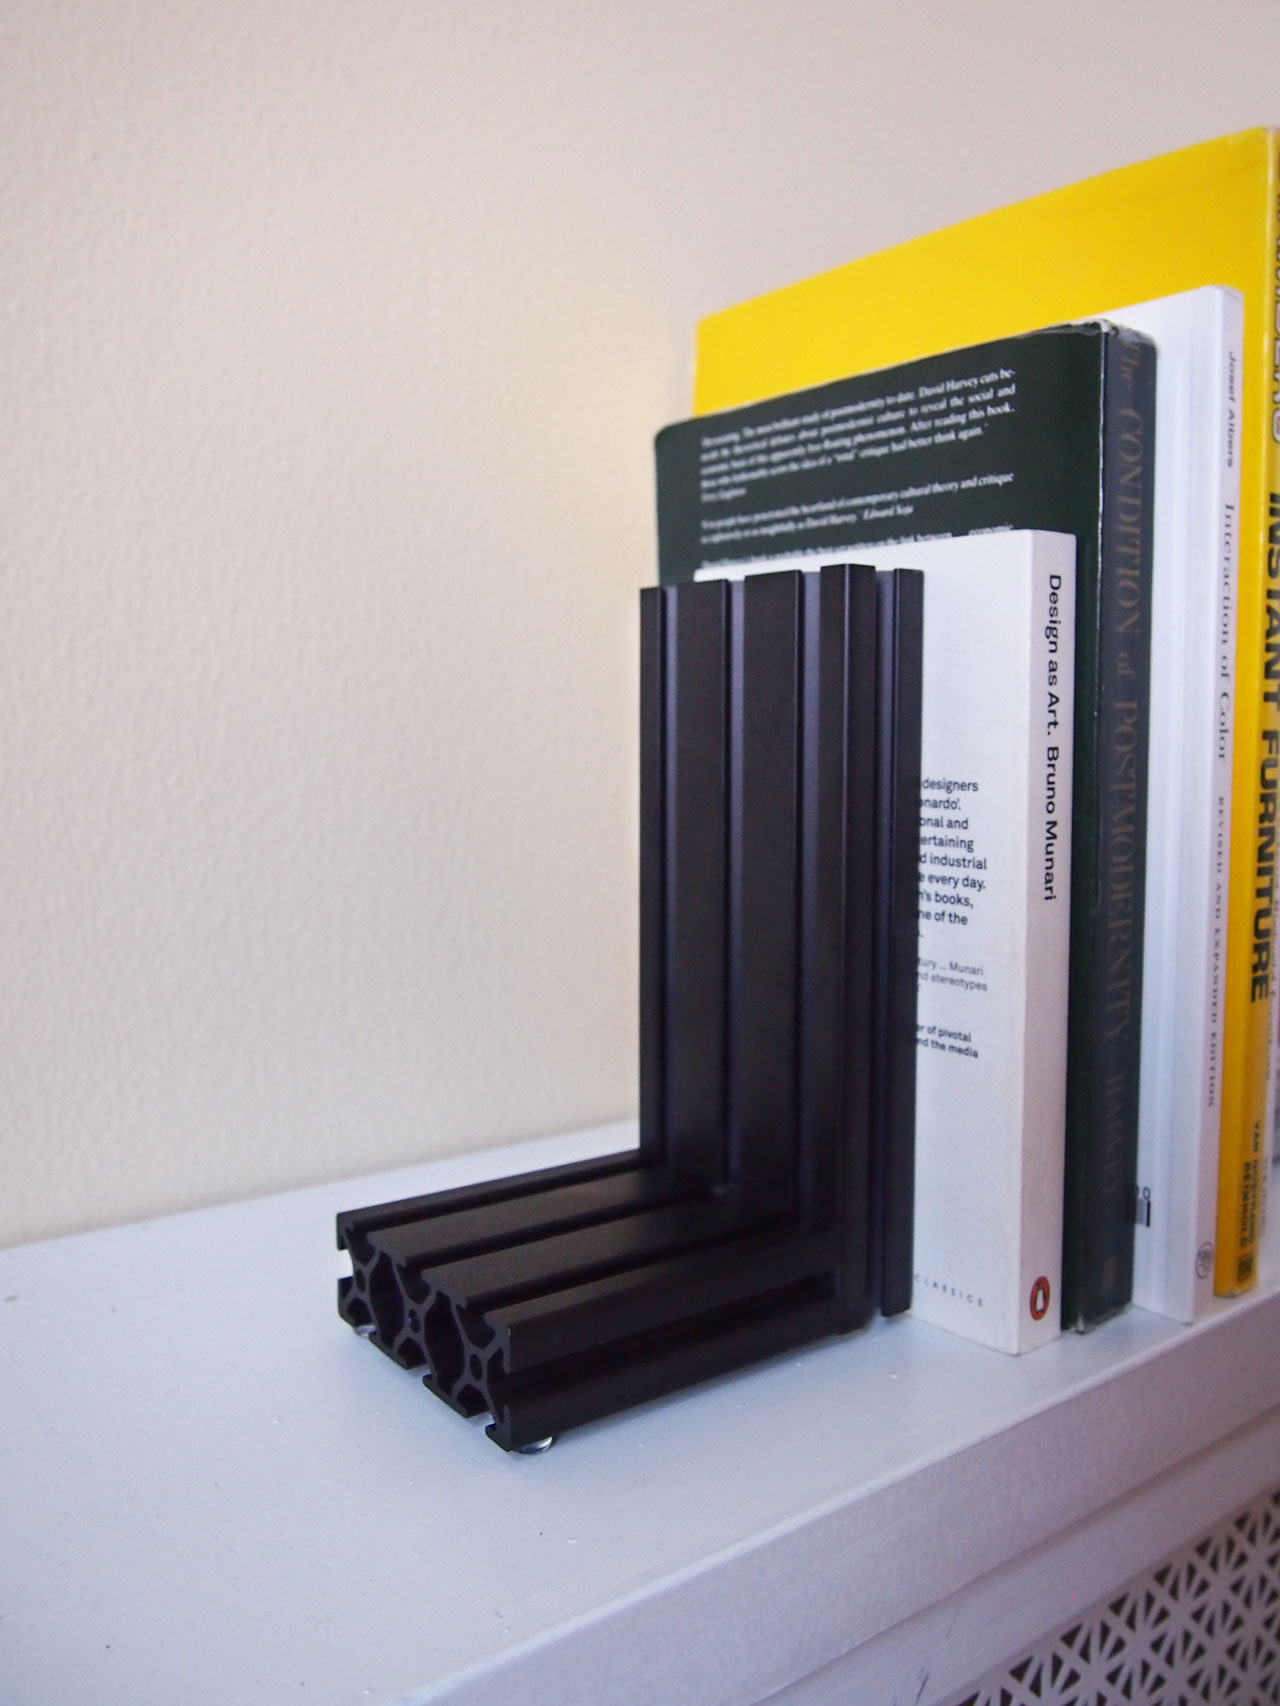 DIY extrusion bookends designed by Aandersson